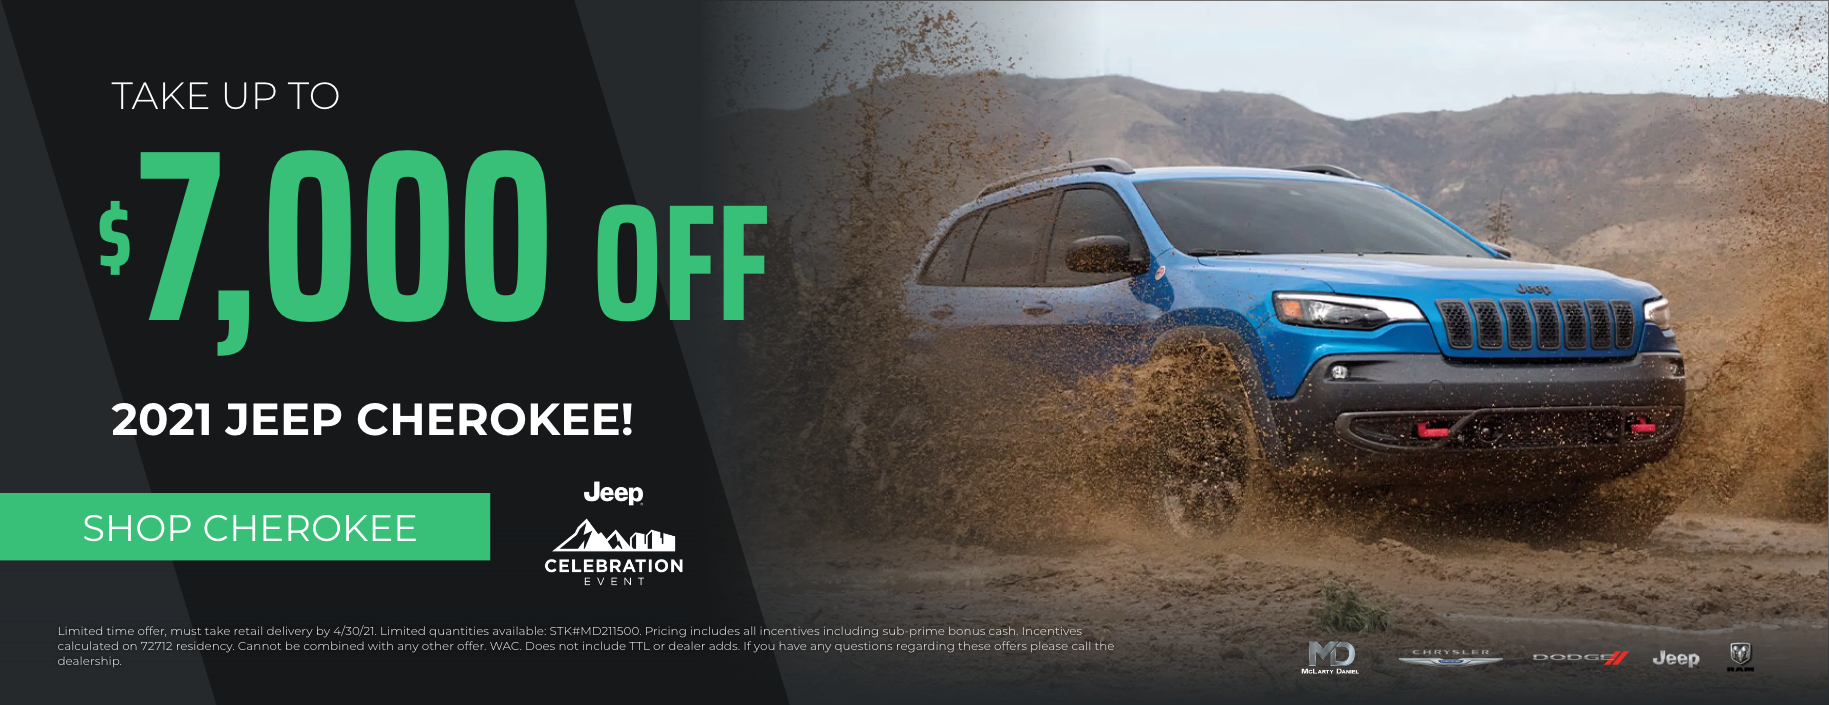 Take up to $7000 off 2021 Jeep Cherokee